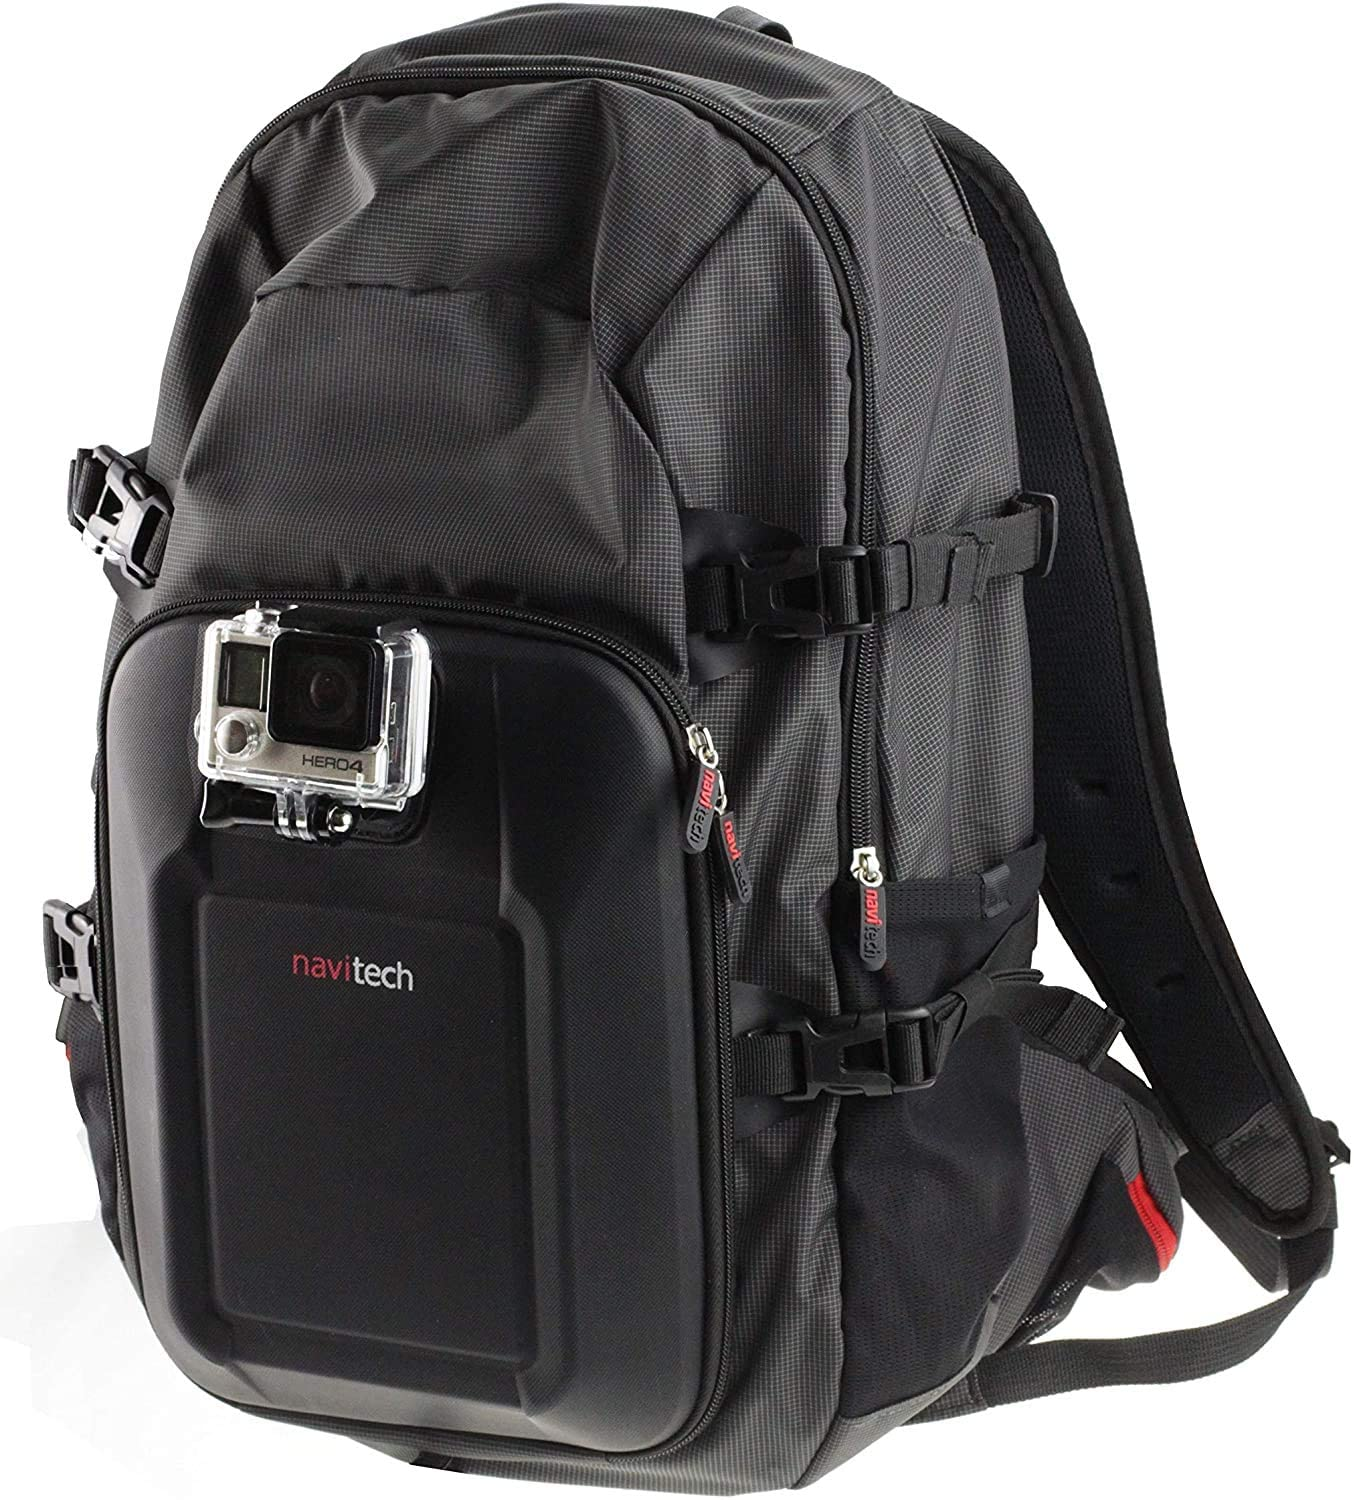 Navitech Action Camera Backpack & Grey Storage Case with Integrated Chest Strap - Compatible with The Kitvision Venture 1080P Action Camera